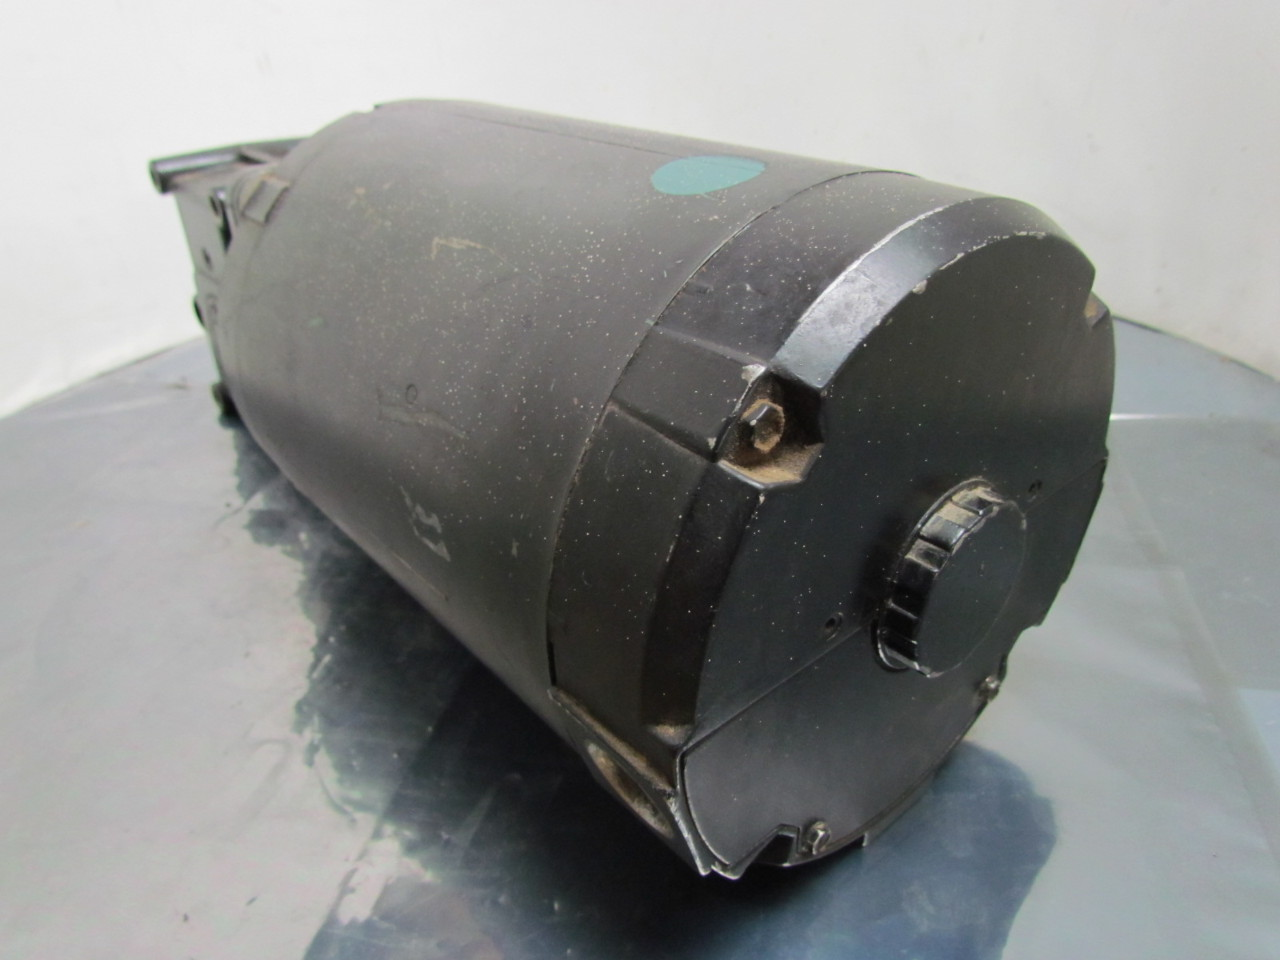 Reliance electric 1 hp 3ph 56c motor w browning 1 1 speed for Reduction gearbox for electric motor